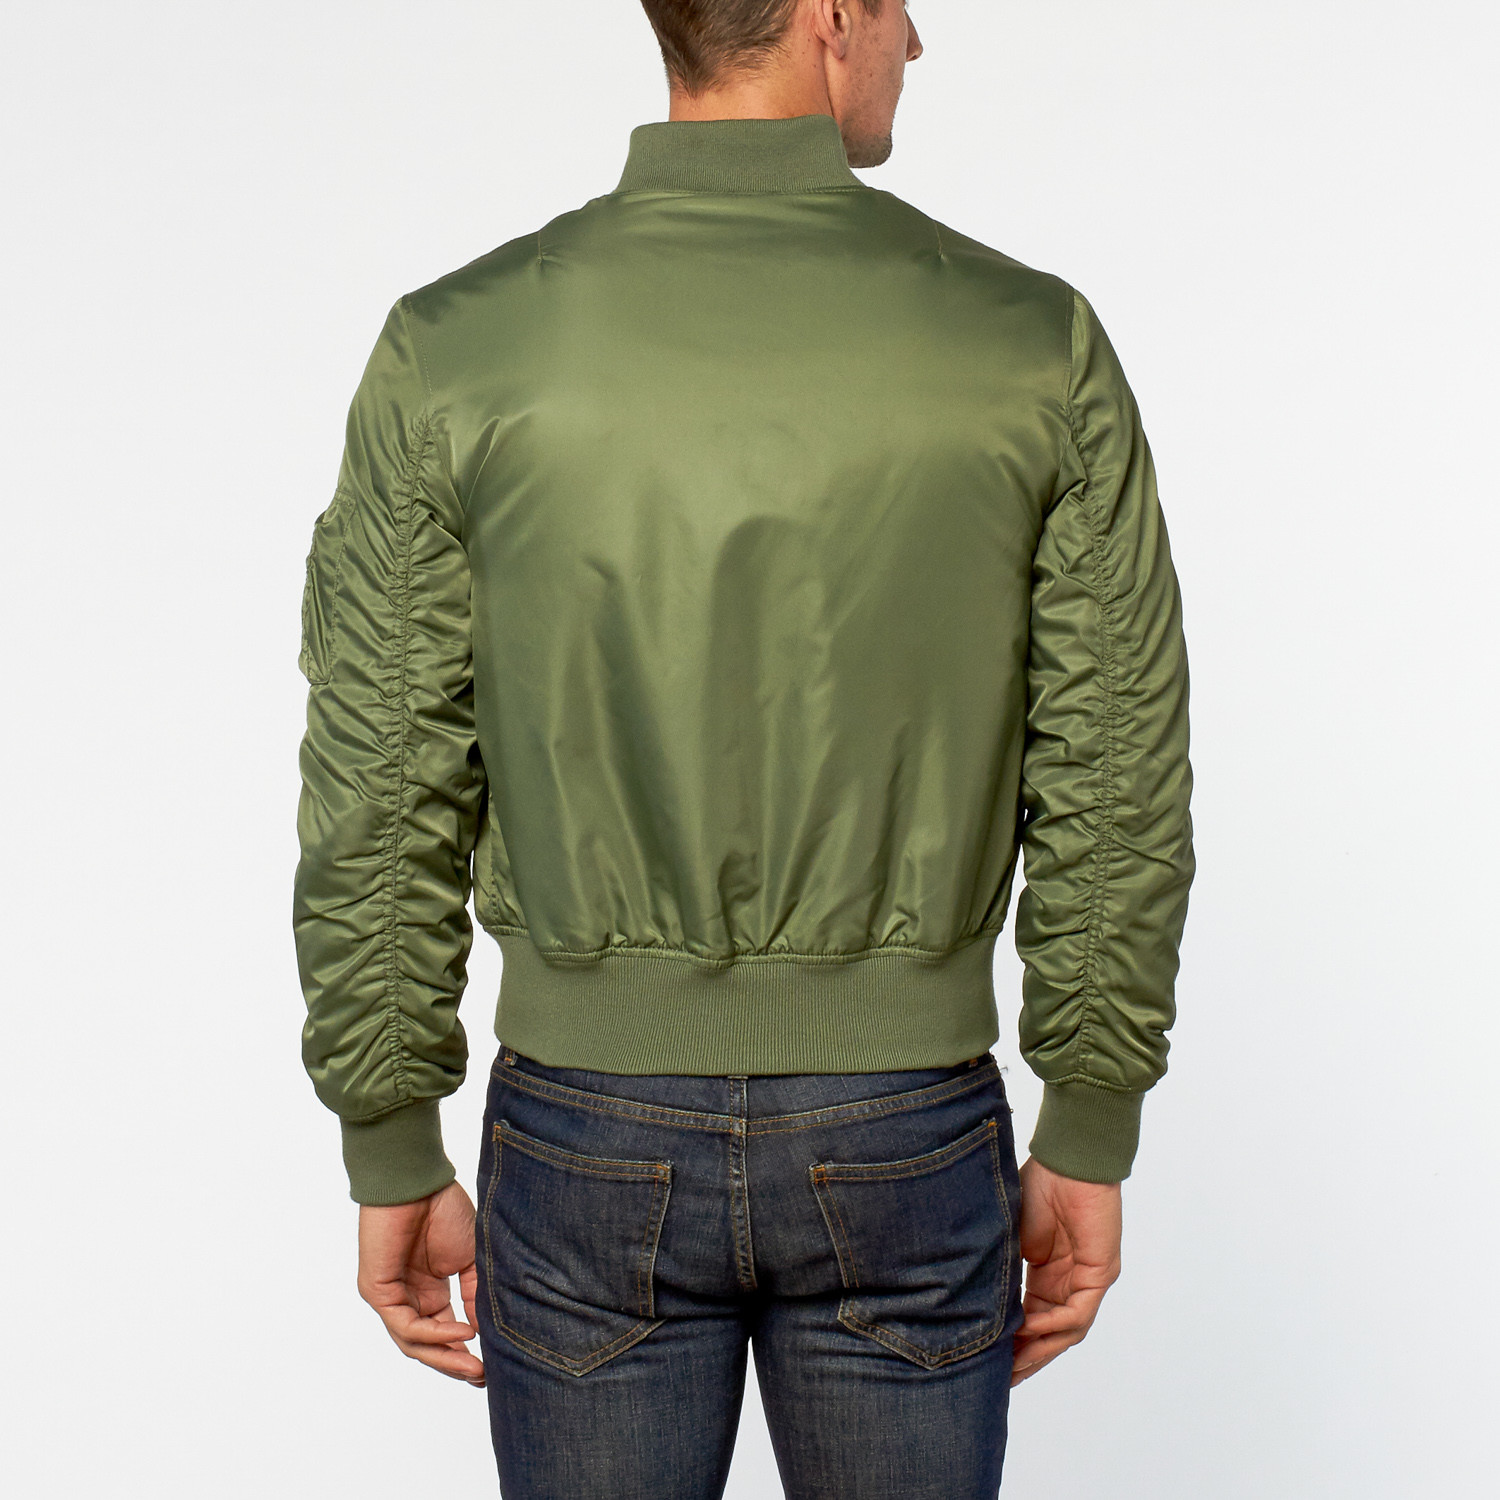 Avirex // Bomber Jacket // Verde Militare (XS) - Your Winter Look ...